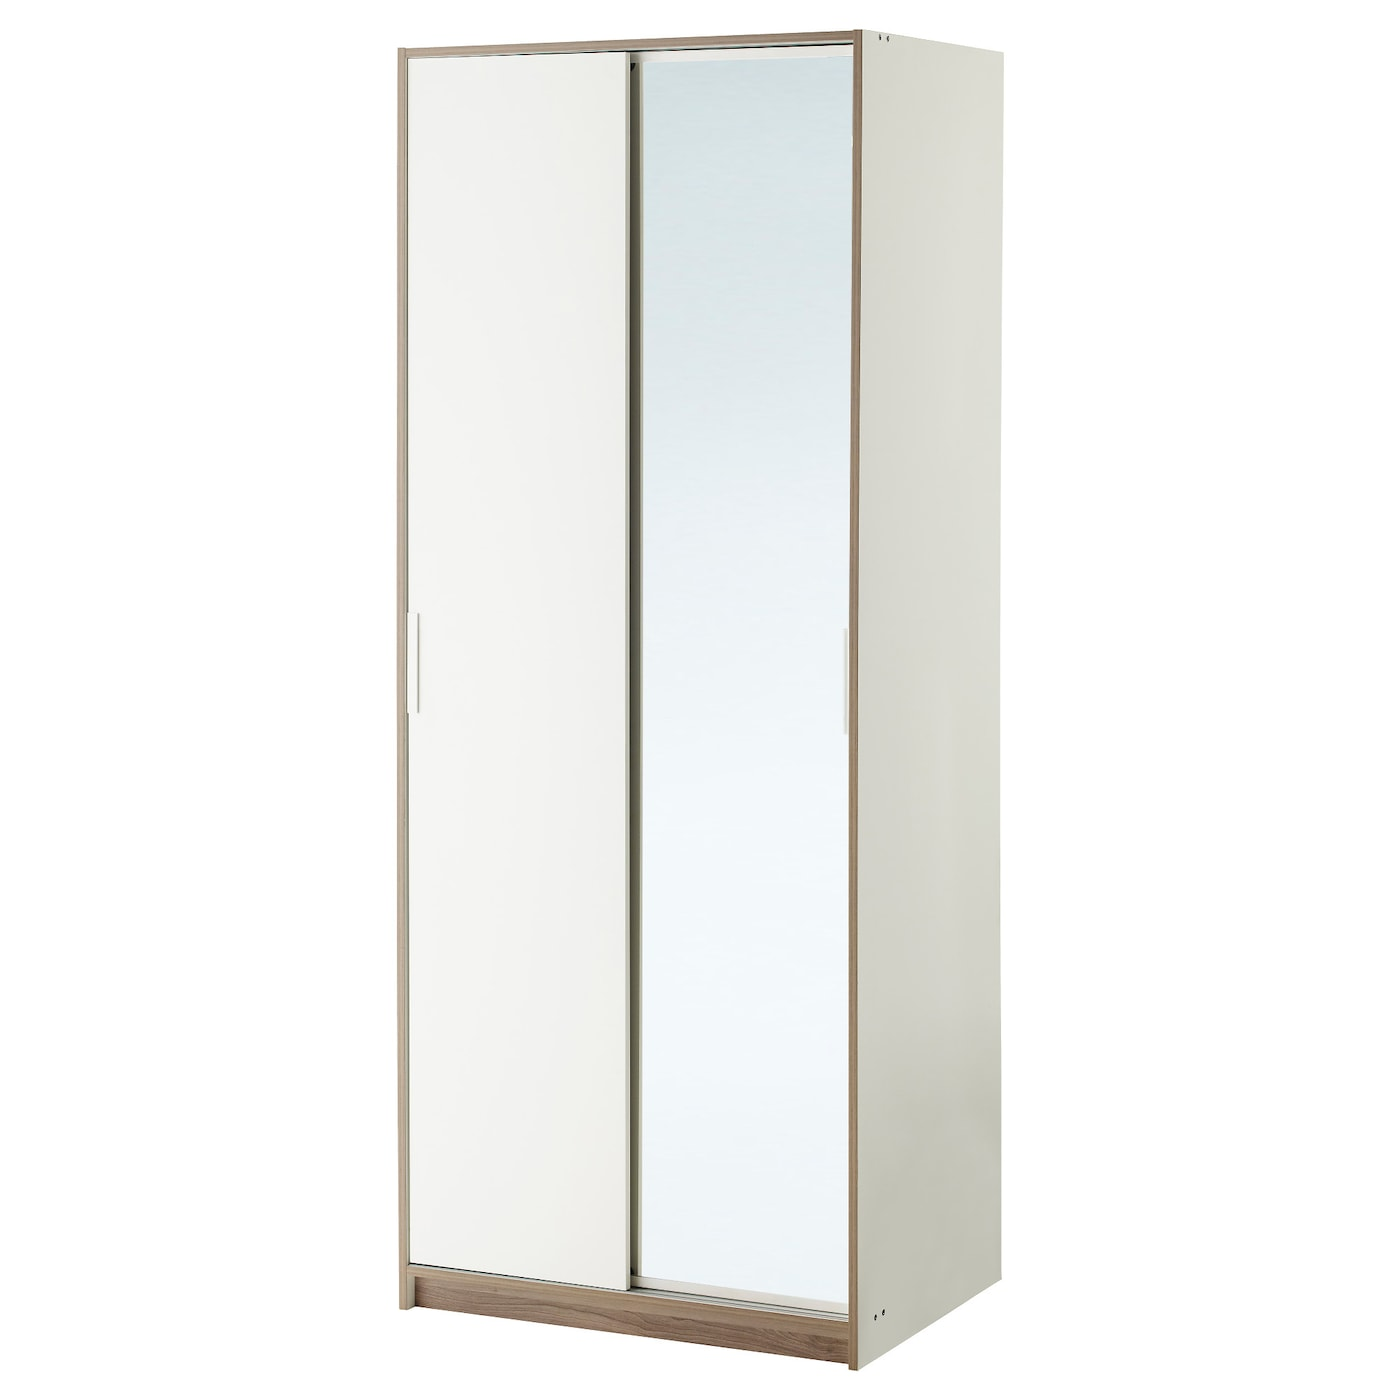 Trysil wardrobe white mirror glass 79x61x202 cm ikea - Ikea armoire with mirror ...